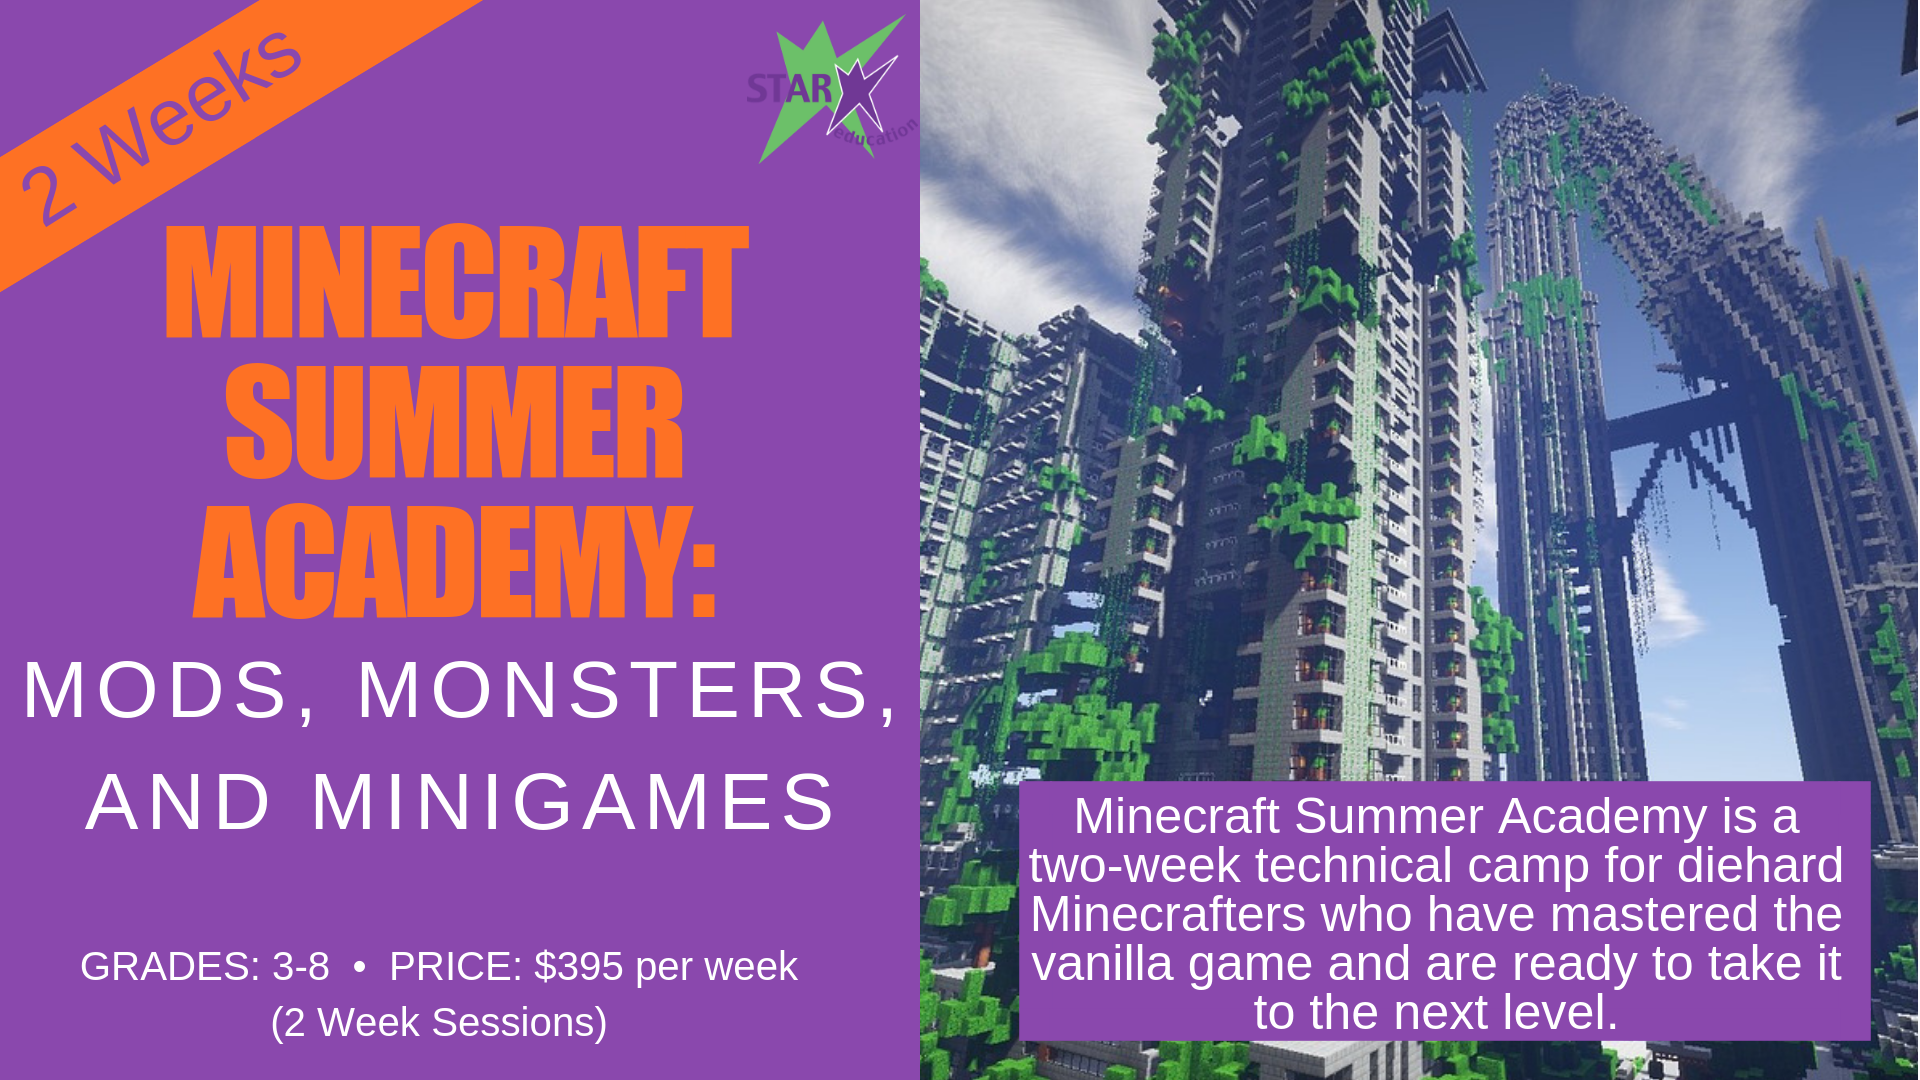 ALL SUMMER CAMPS 2019 — STAR CAMPS